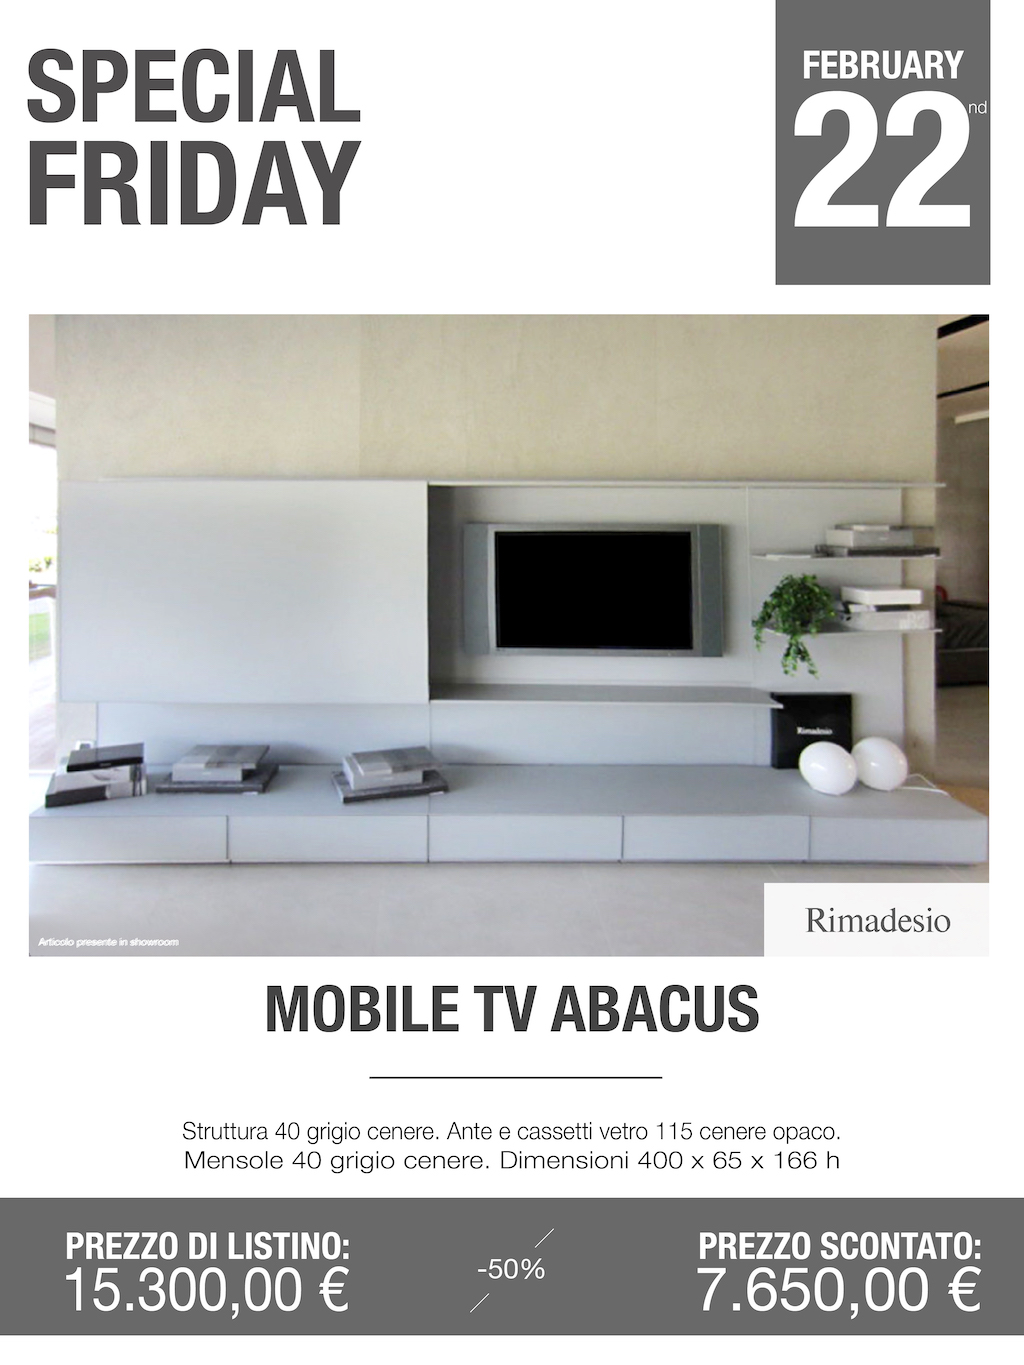 mobile tv Abacus Rimadesio